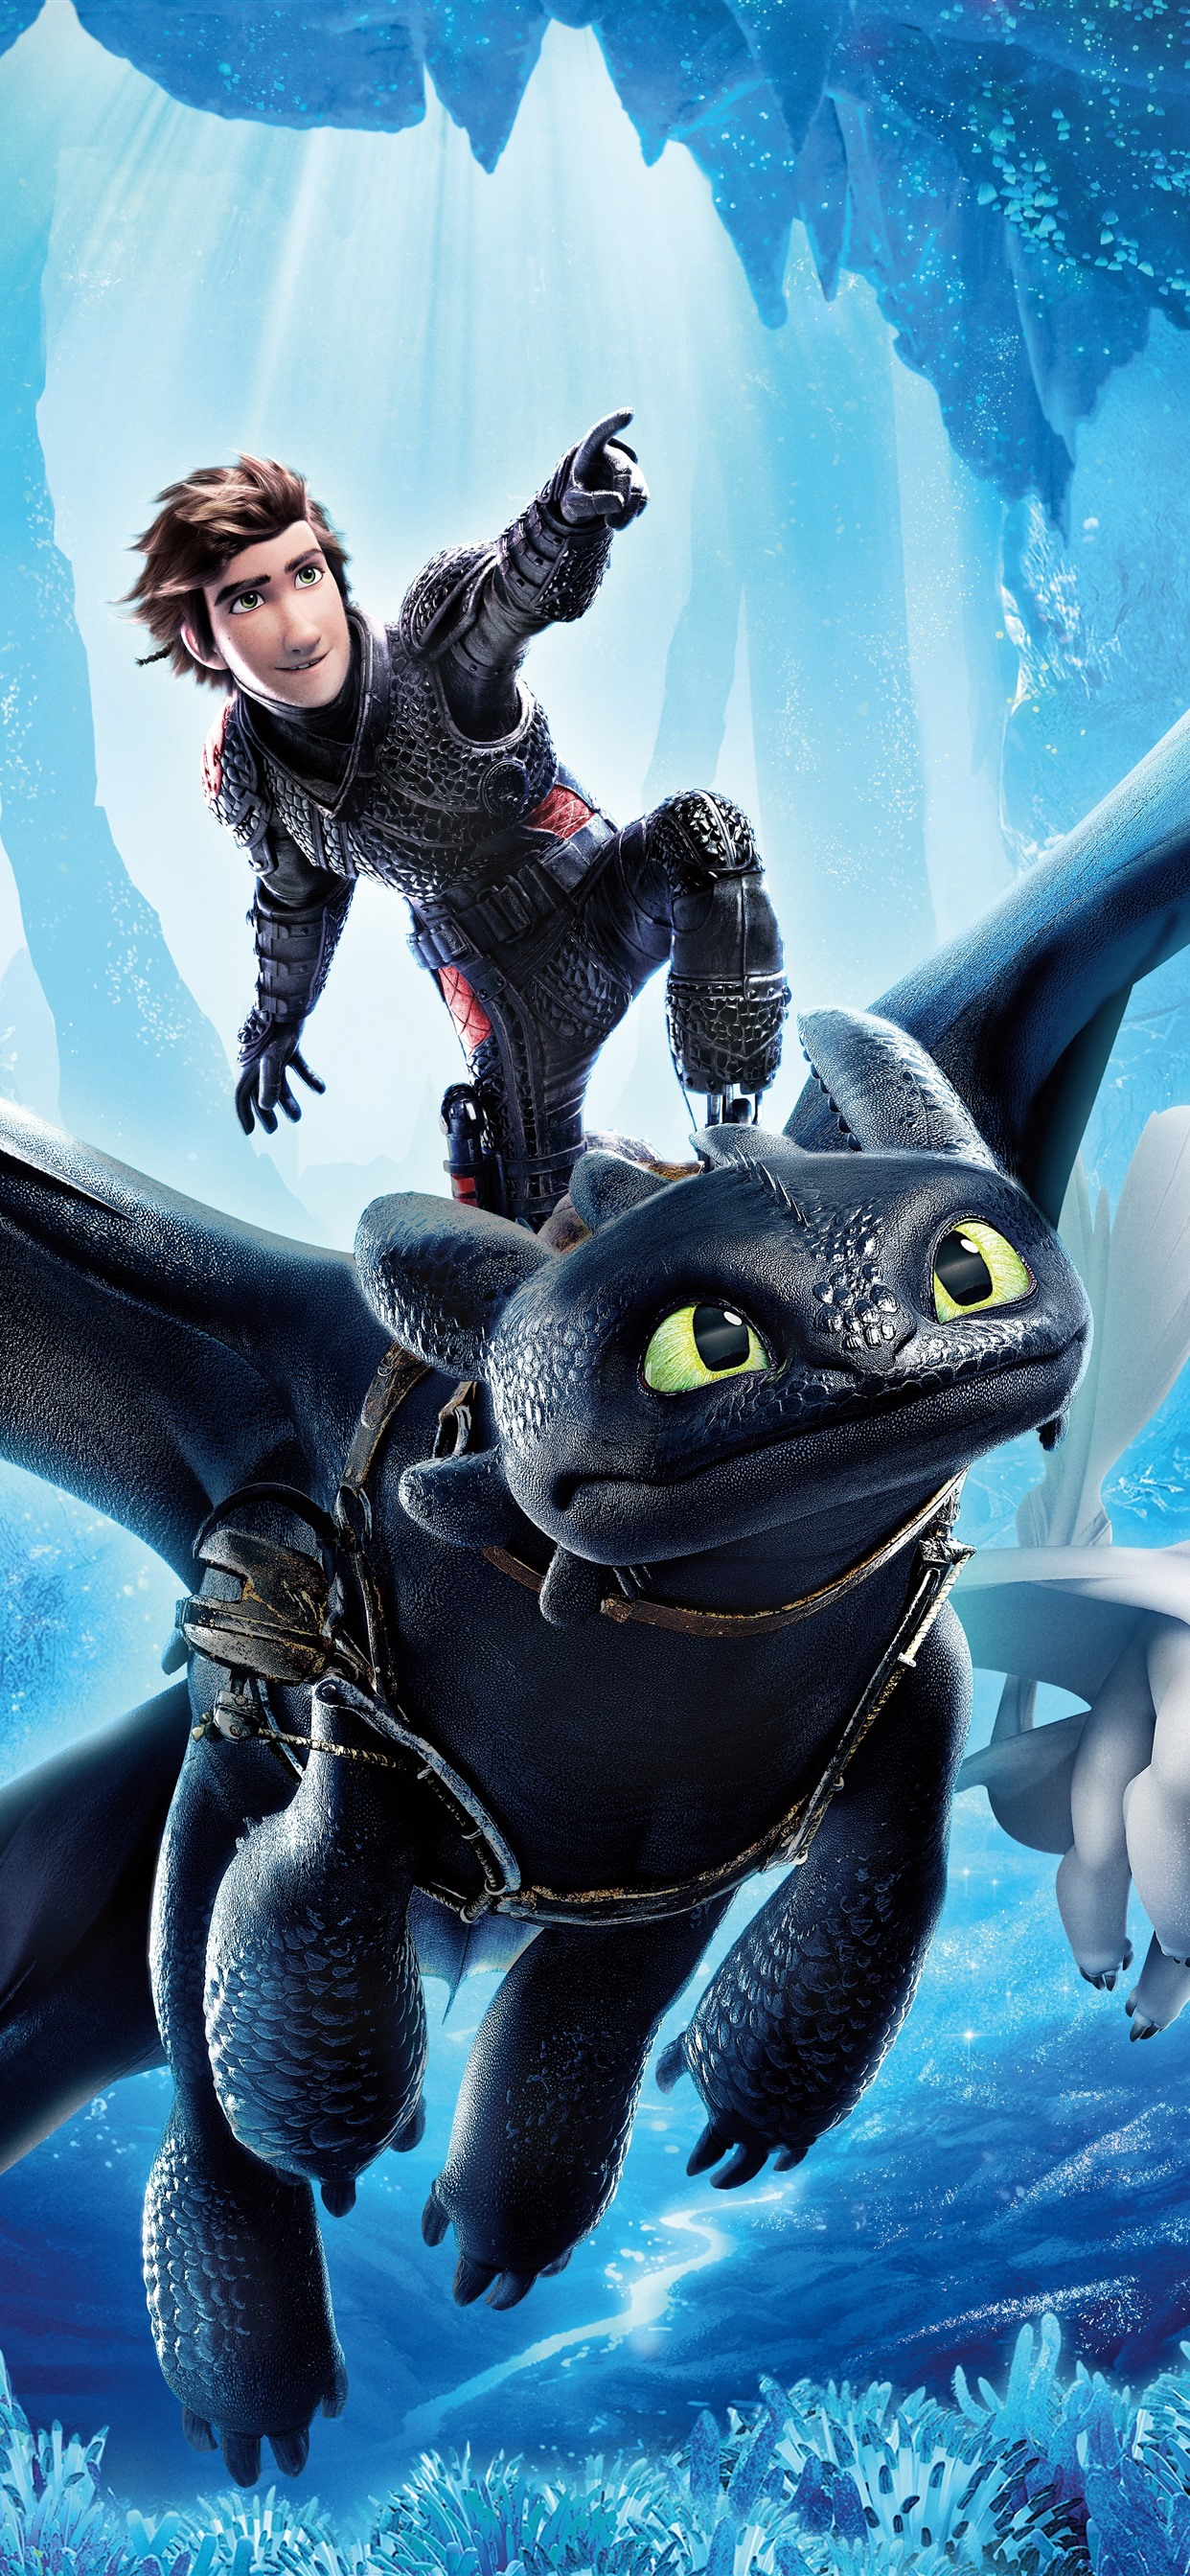 Wallpaper How To Train Your Dragon 3 7680x4320 Uhd 8k Picture Image